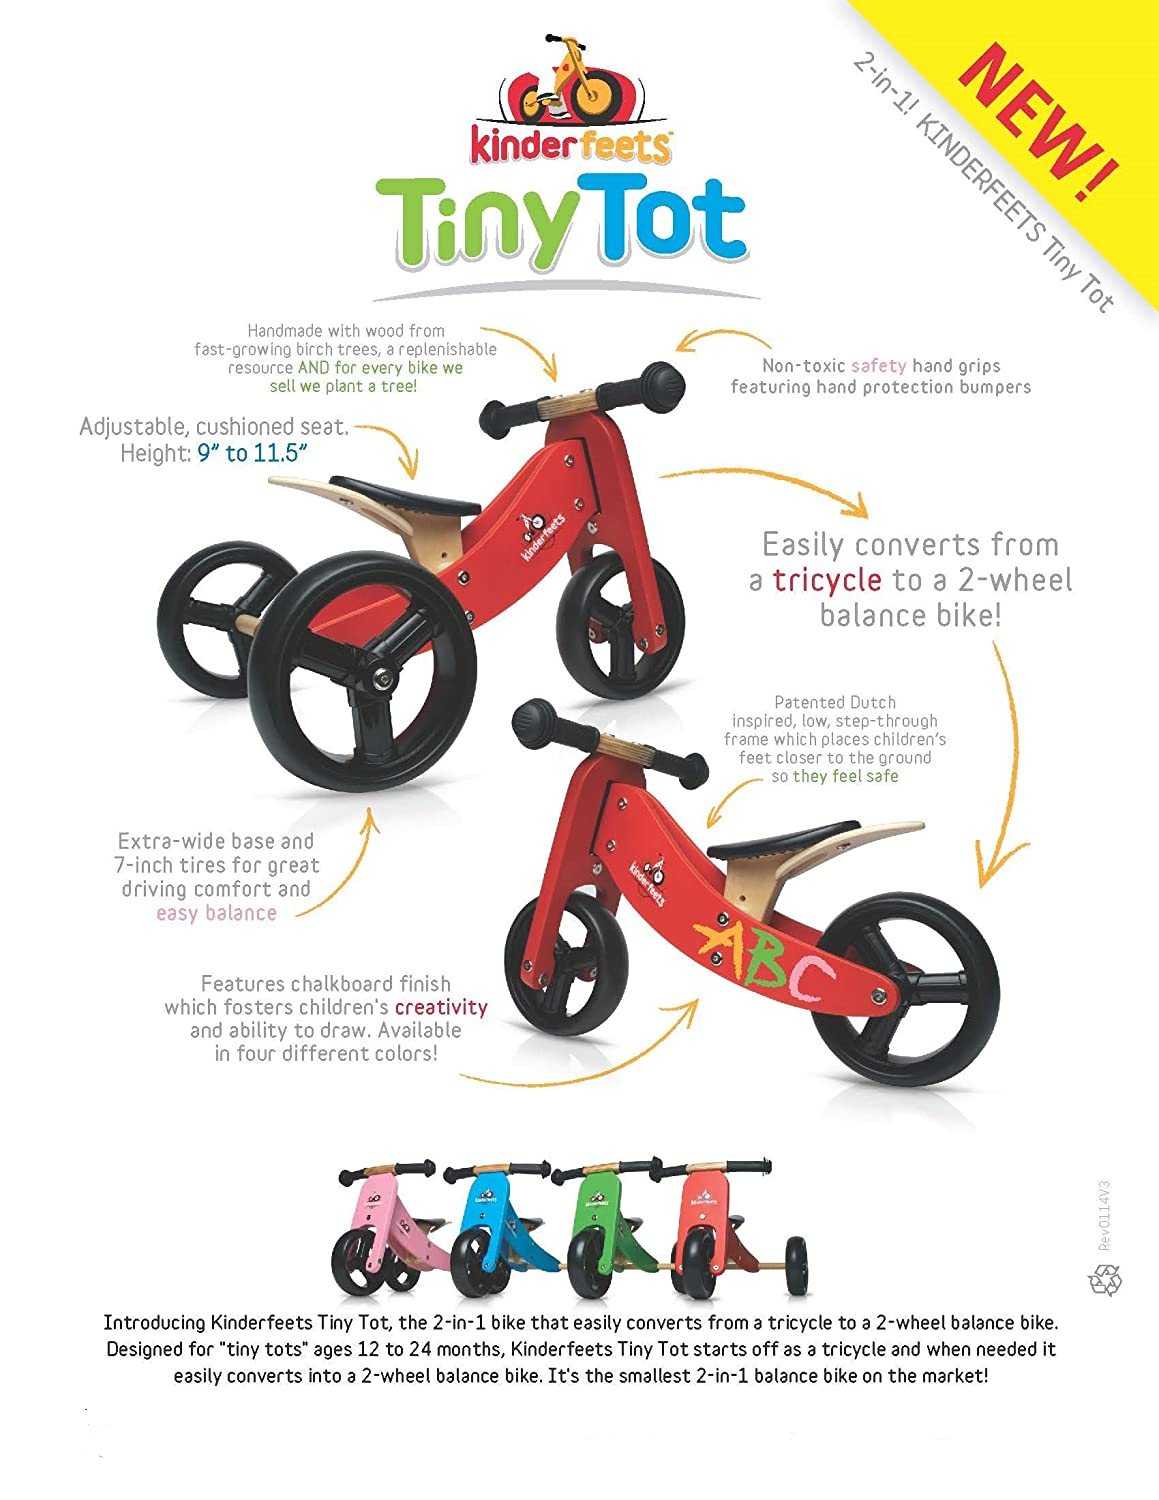 Kinderfeets TinyTot - 2-in-1! Wooden Balance Bike and Tricycle in One. Adjustable Seat. FOR AGES 12 TO 24 MONTHS OLD 800g electronic balance measuring scale with different units counting balance and weight balance